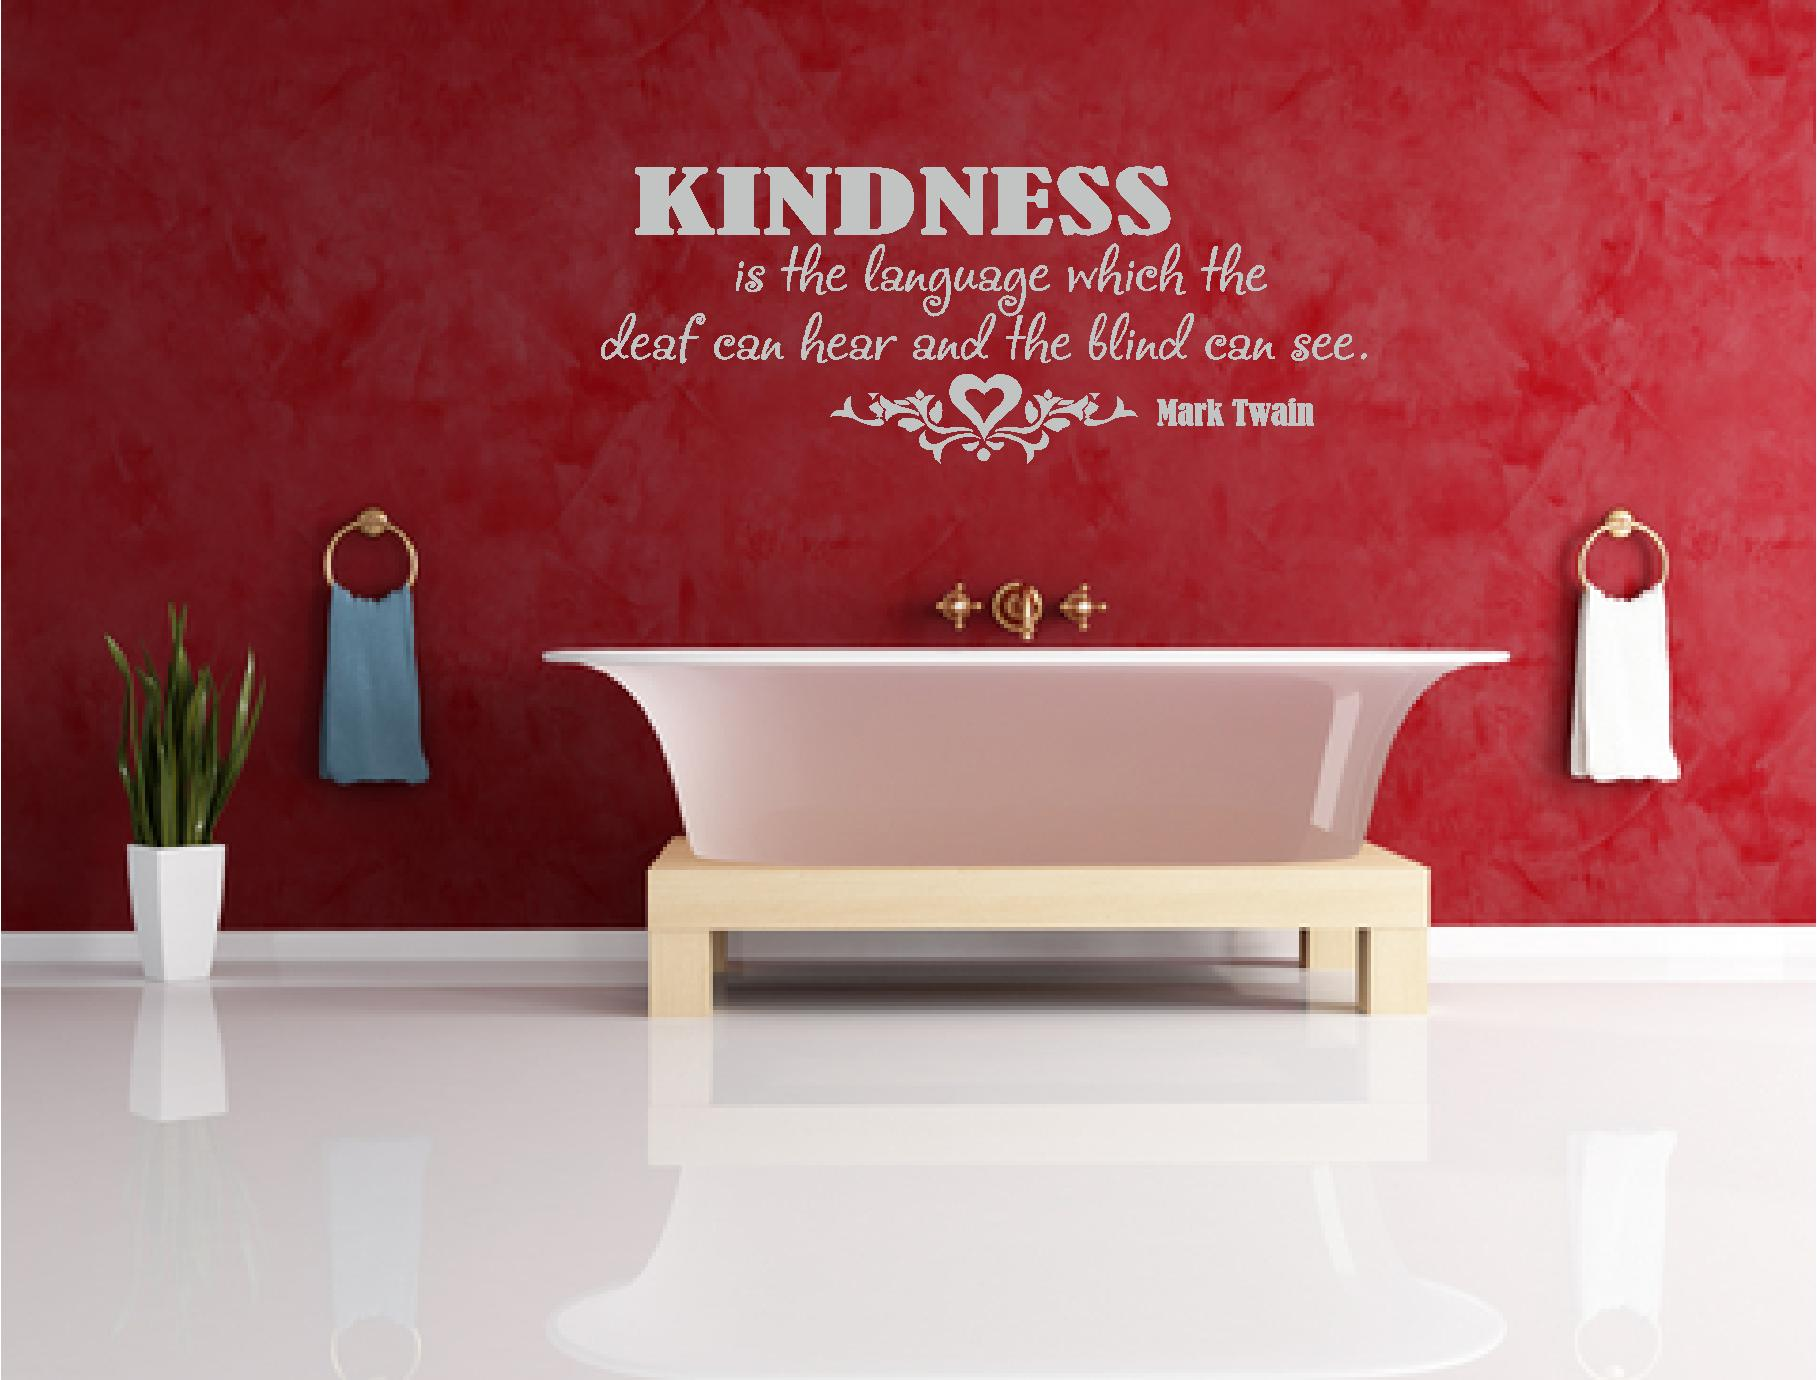 kindness is the language which the deaf can hear.jpg